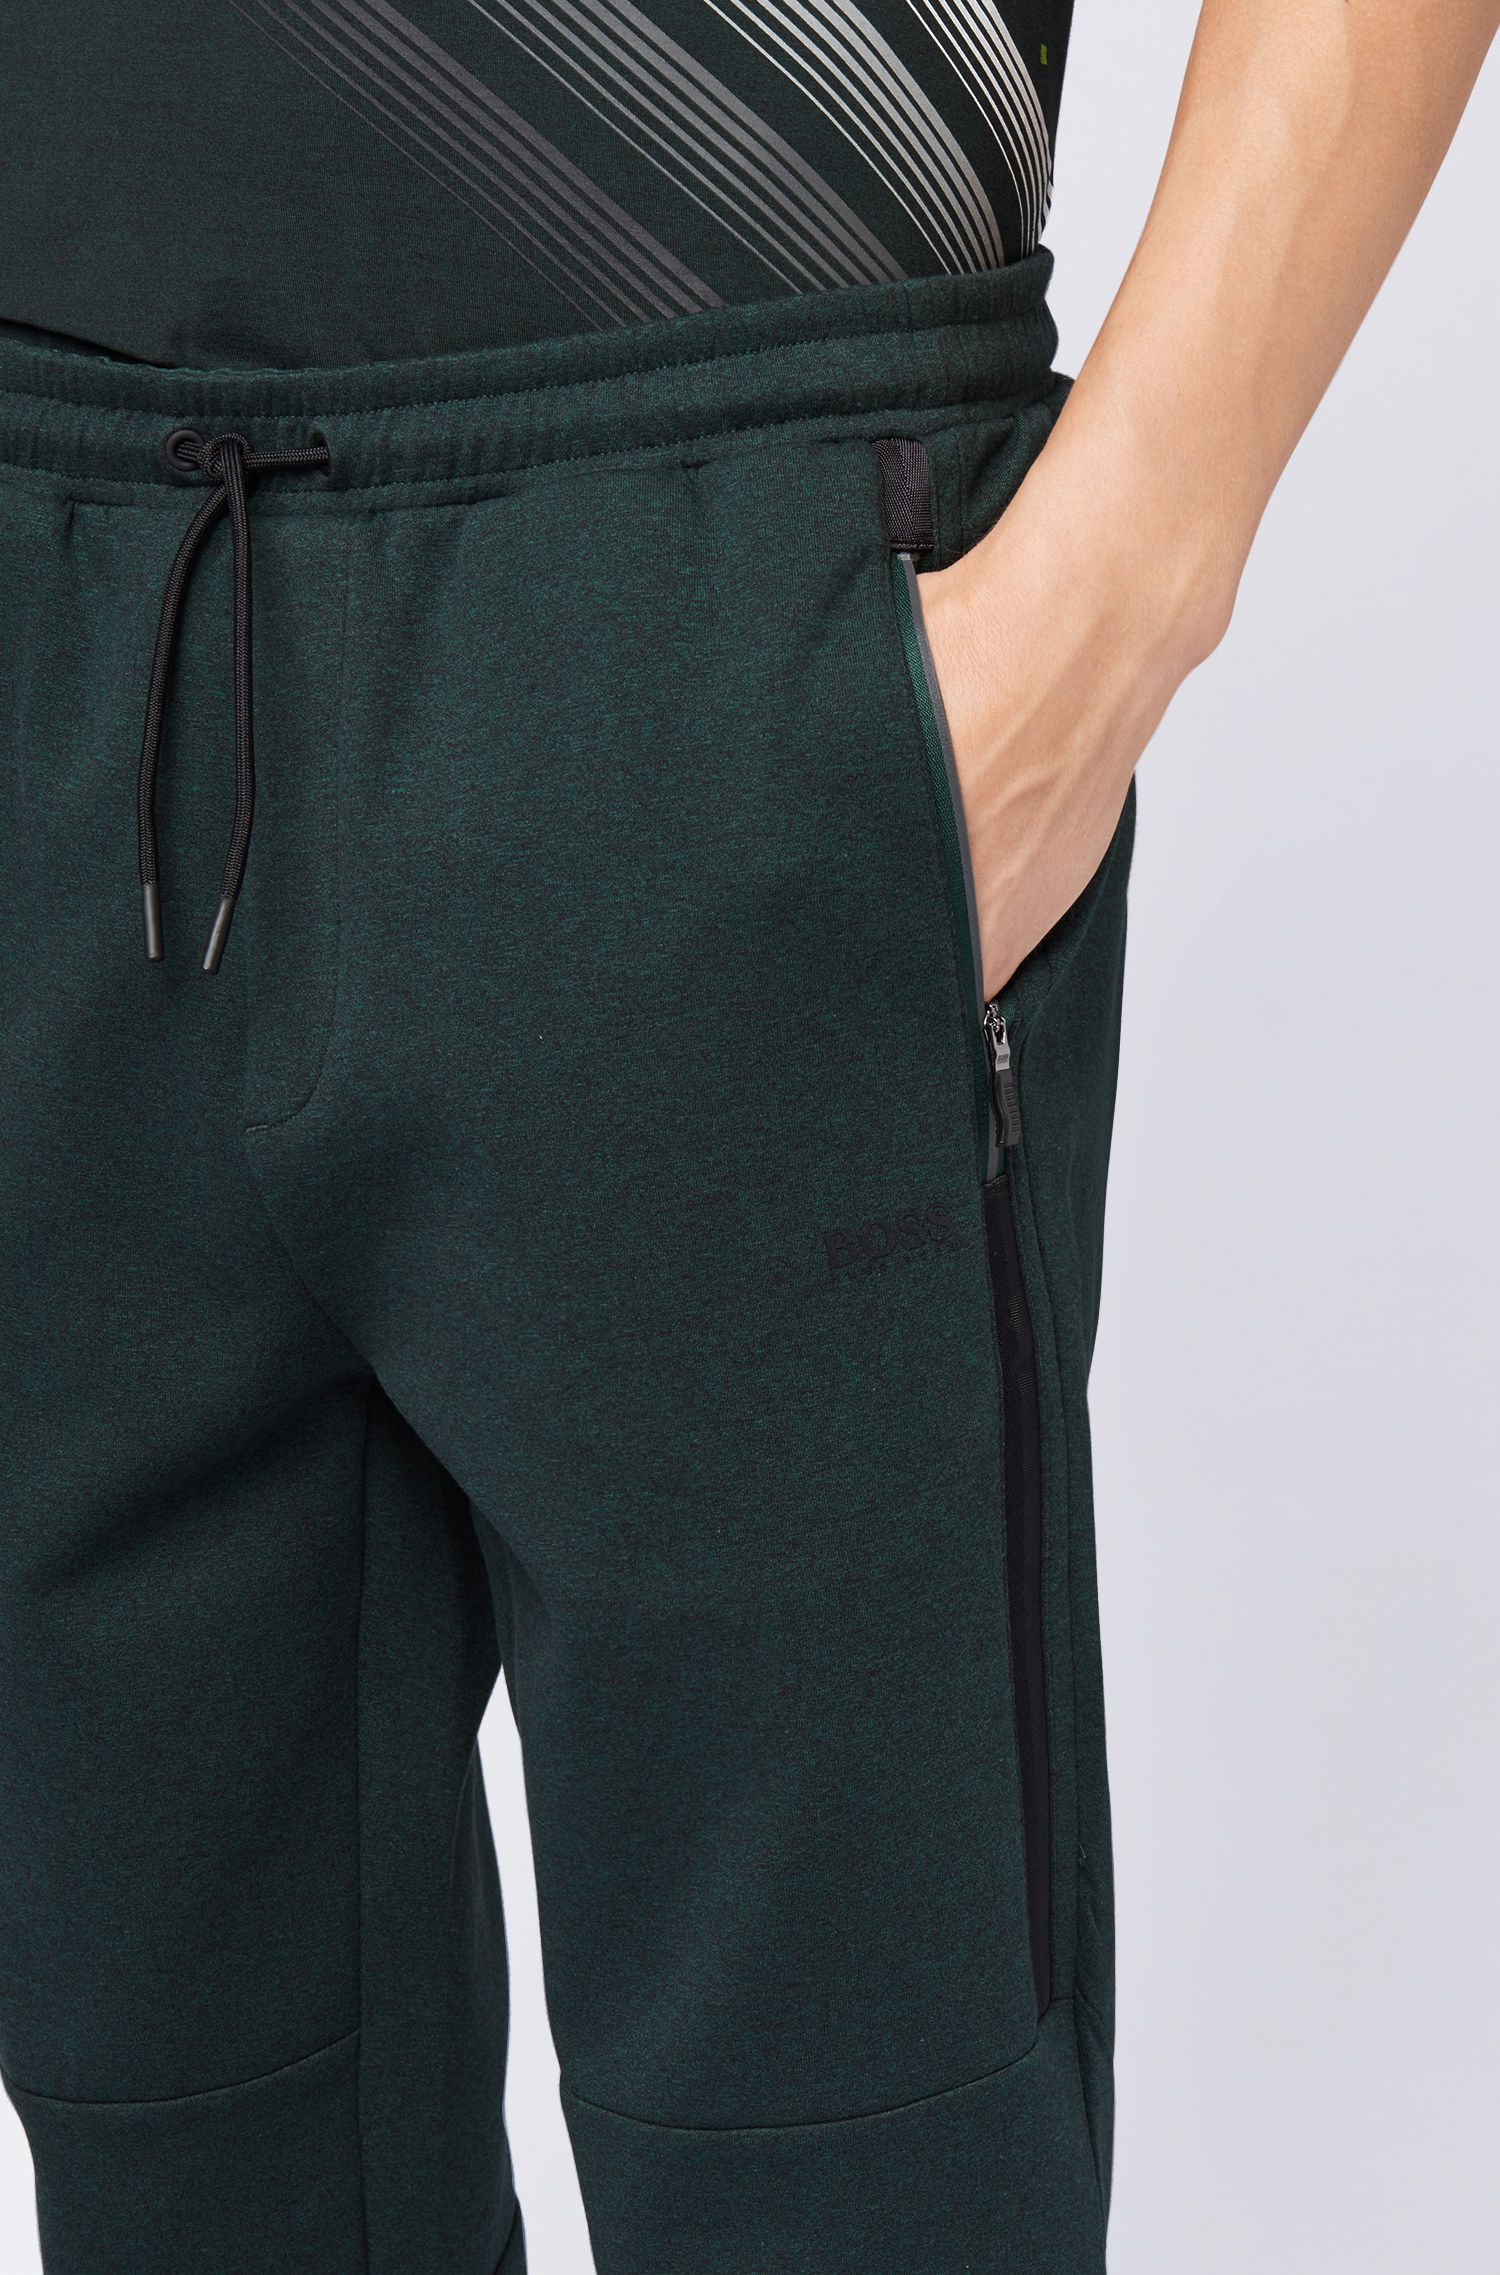 Slim-fit mouliné jersey pants with tape details, Dark Green